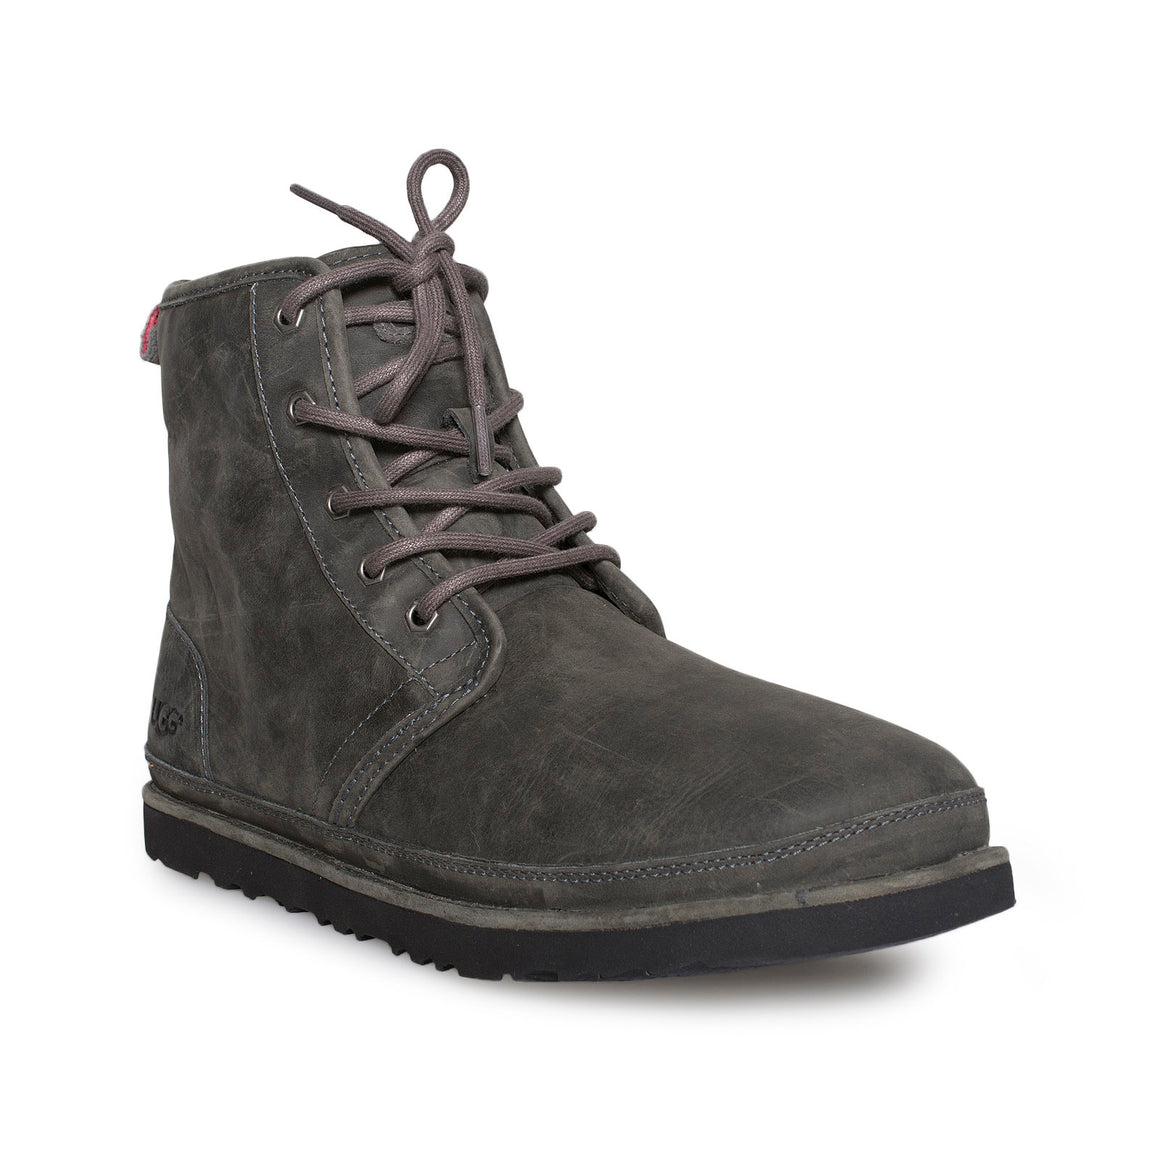 UGG Harkley Waterproof Charcoal Boots